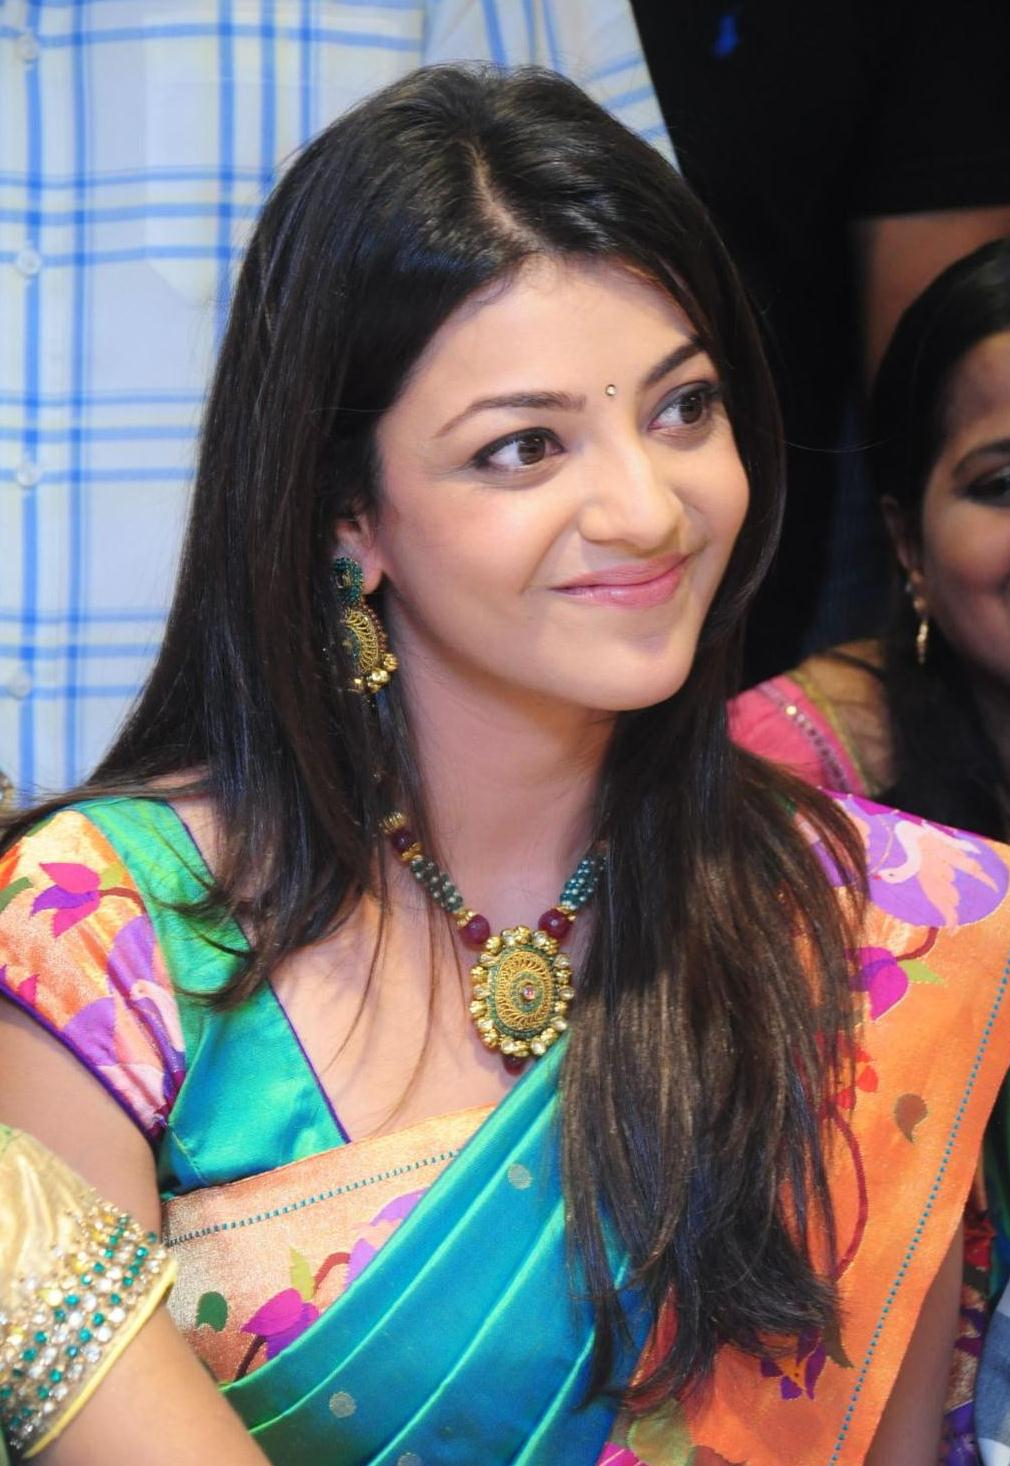 best popular celebrities: most popular celebrities kajal aggarwal hd